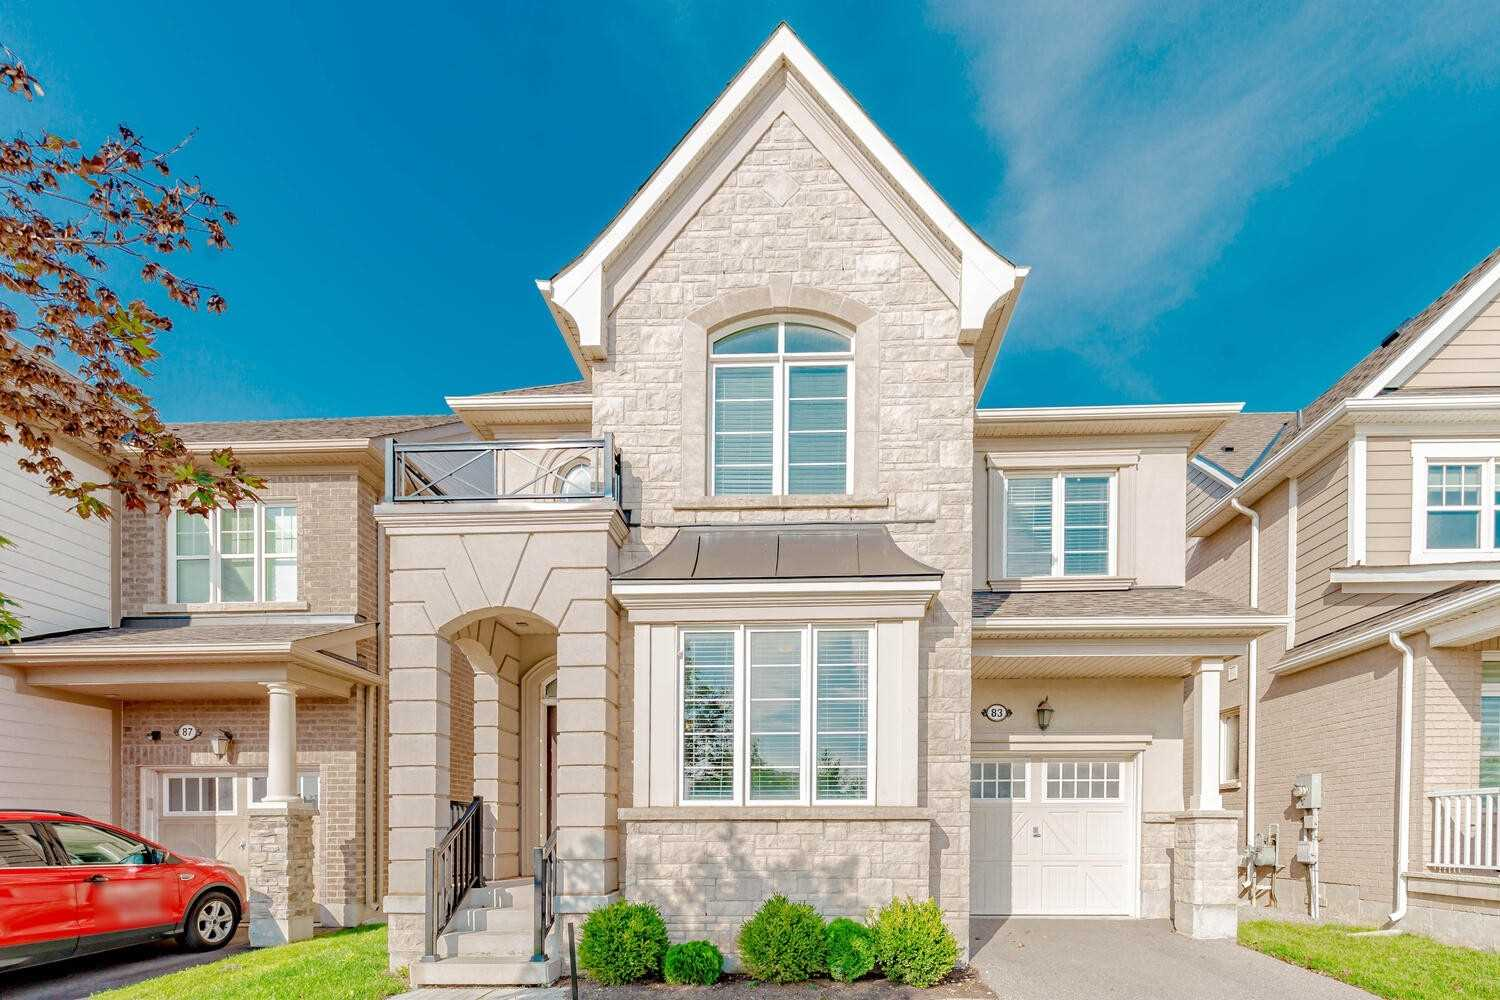 Detached house For Lease In Oakville